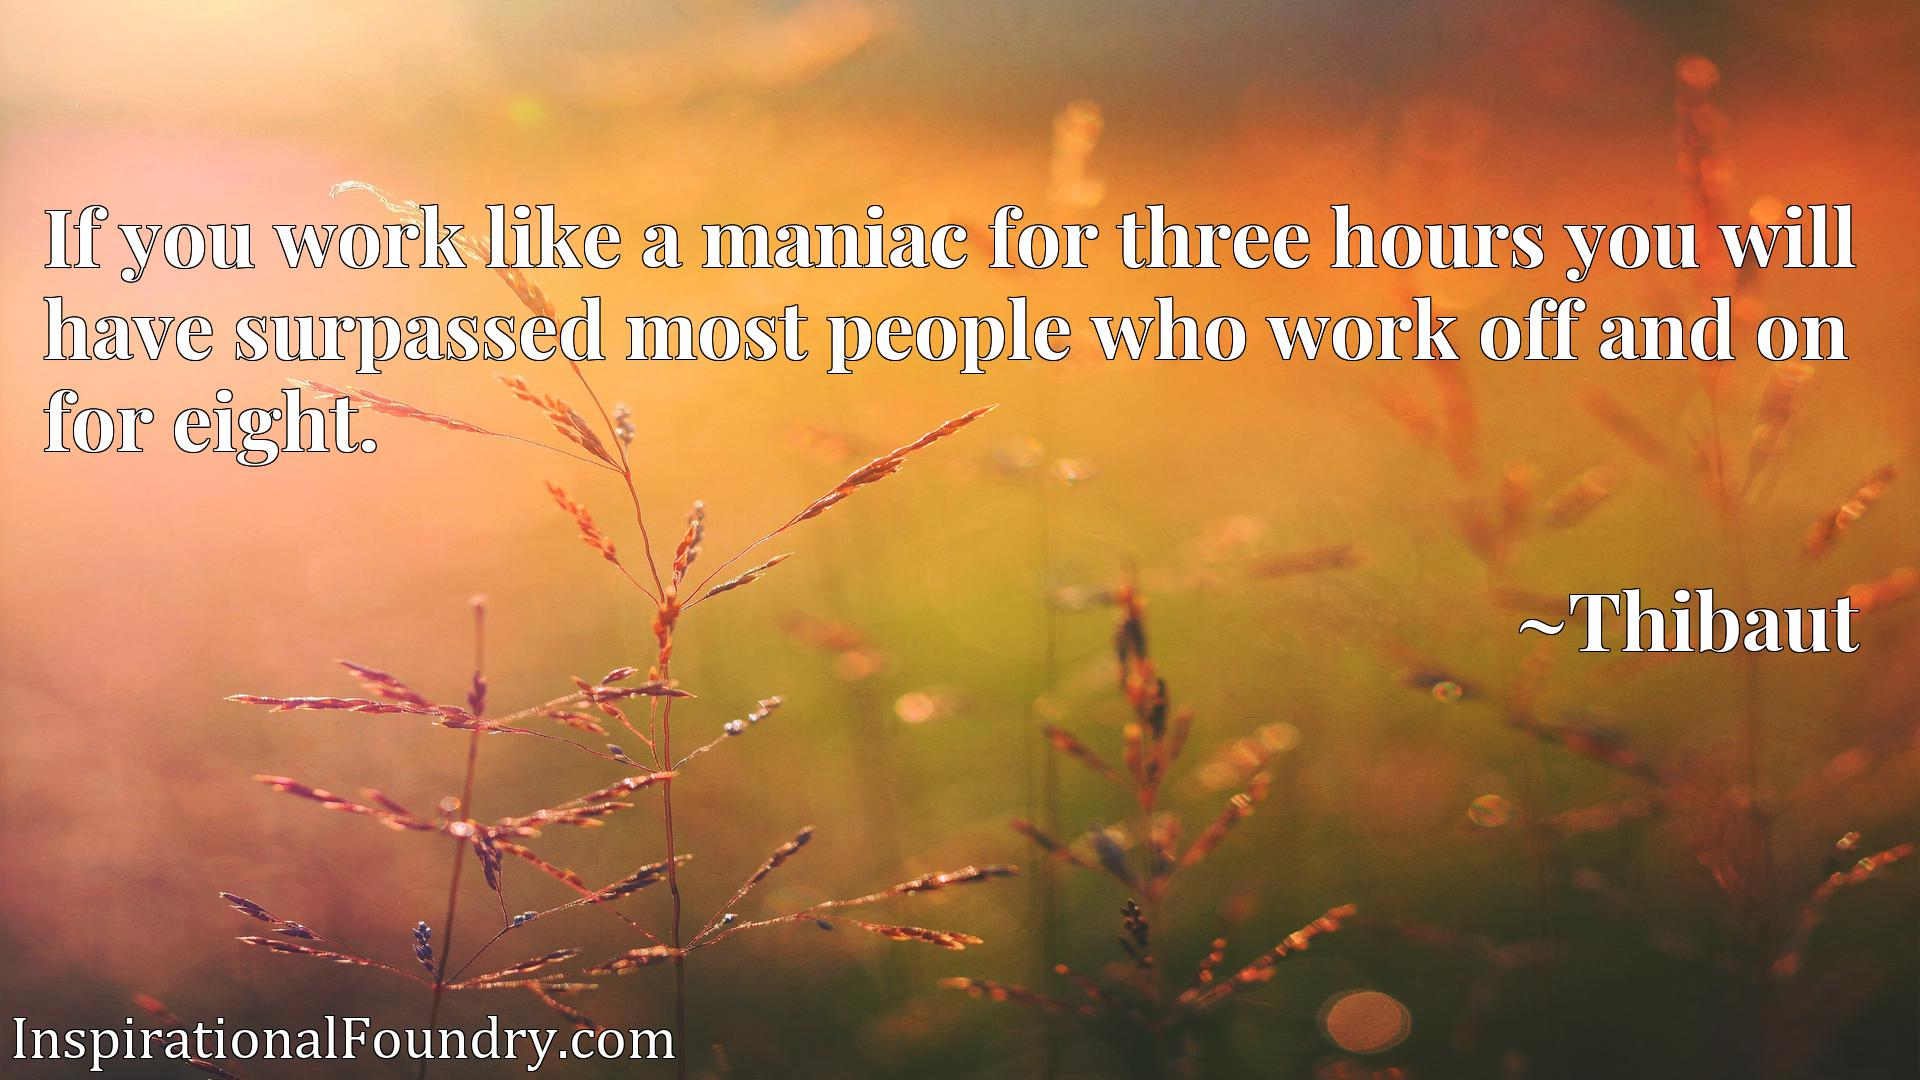 Quote Picture :If you work like a maniac for three hours you will have surpassed most people who work off and on for eight.